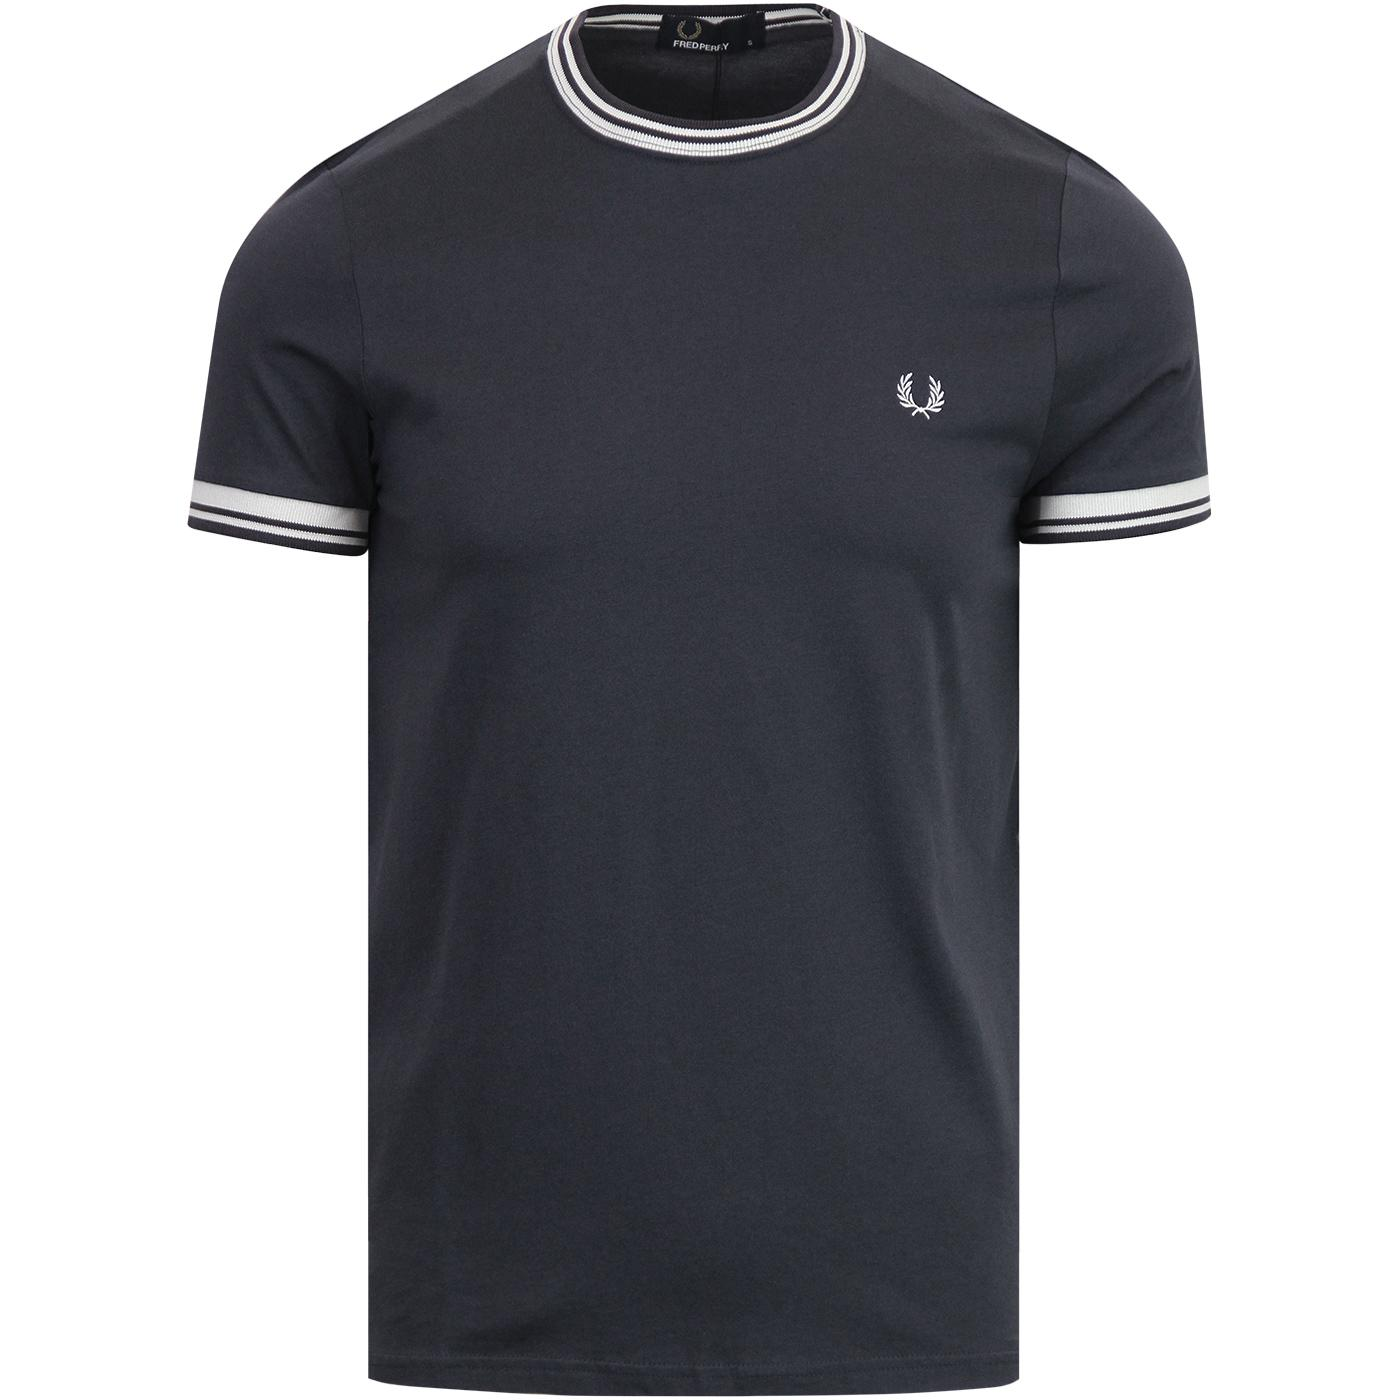 FRED PERRY Retro Mod Twin Tipped Crew Tee GRAPHITE